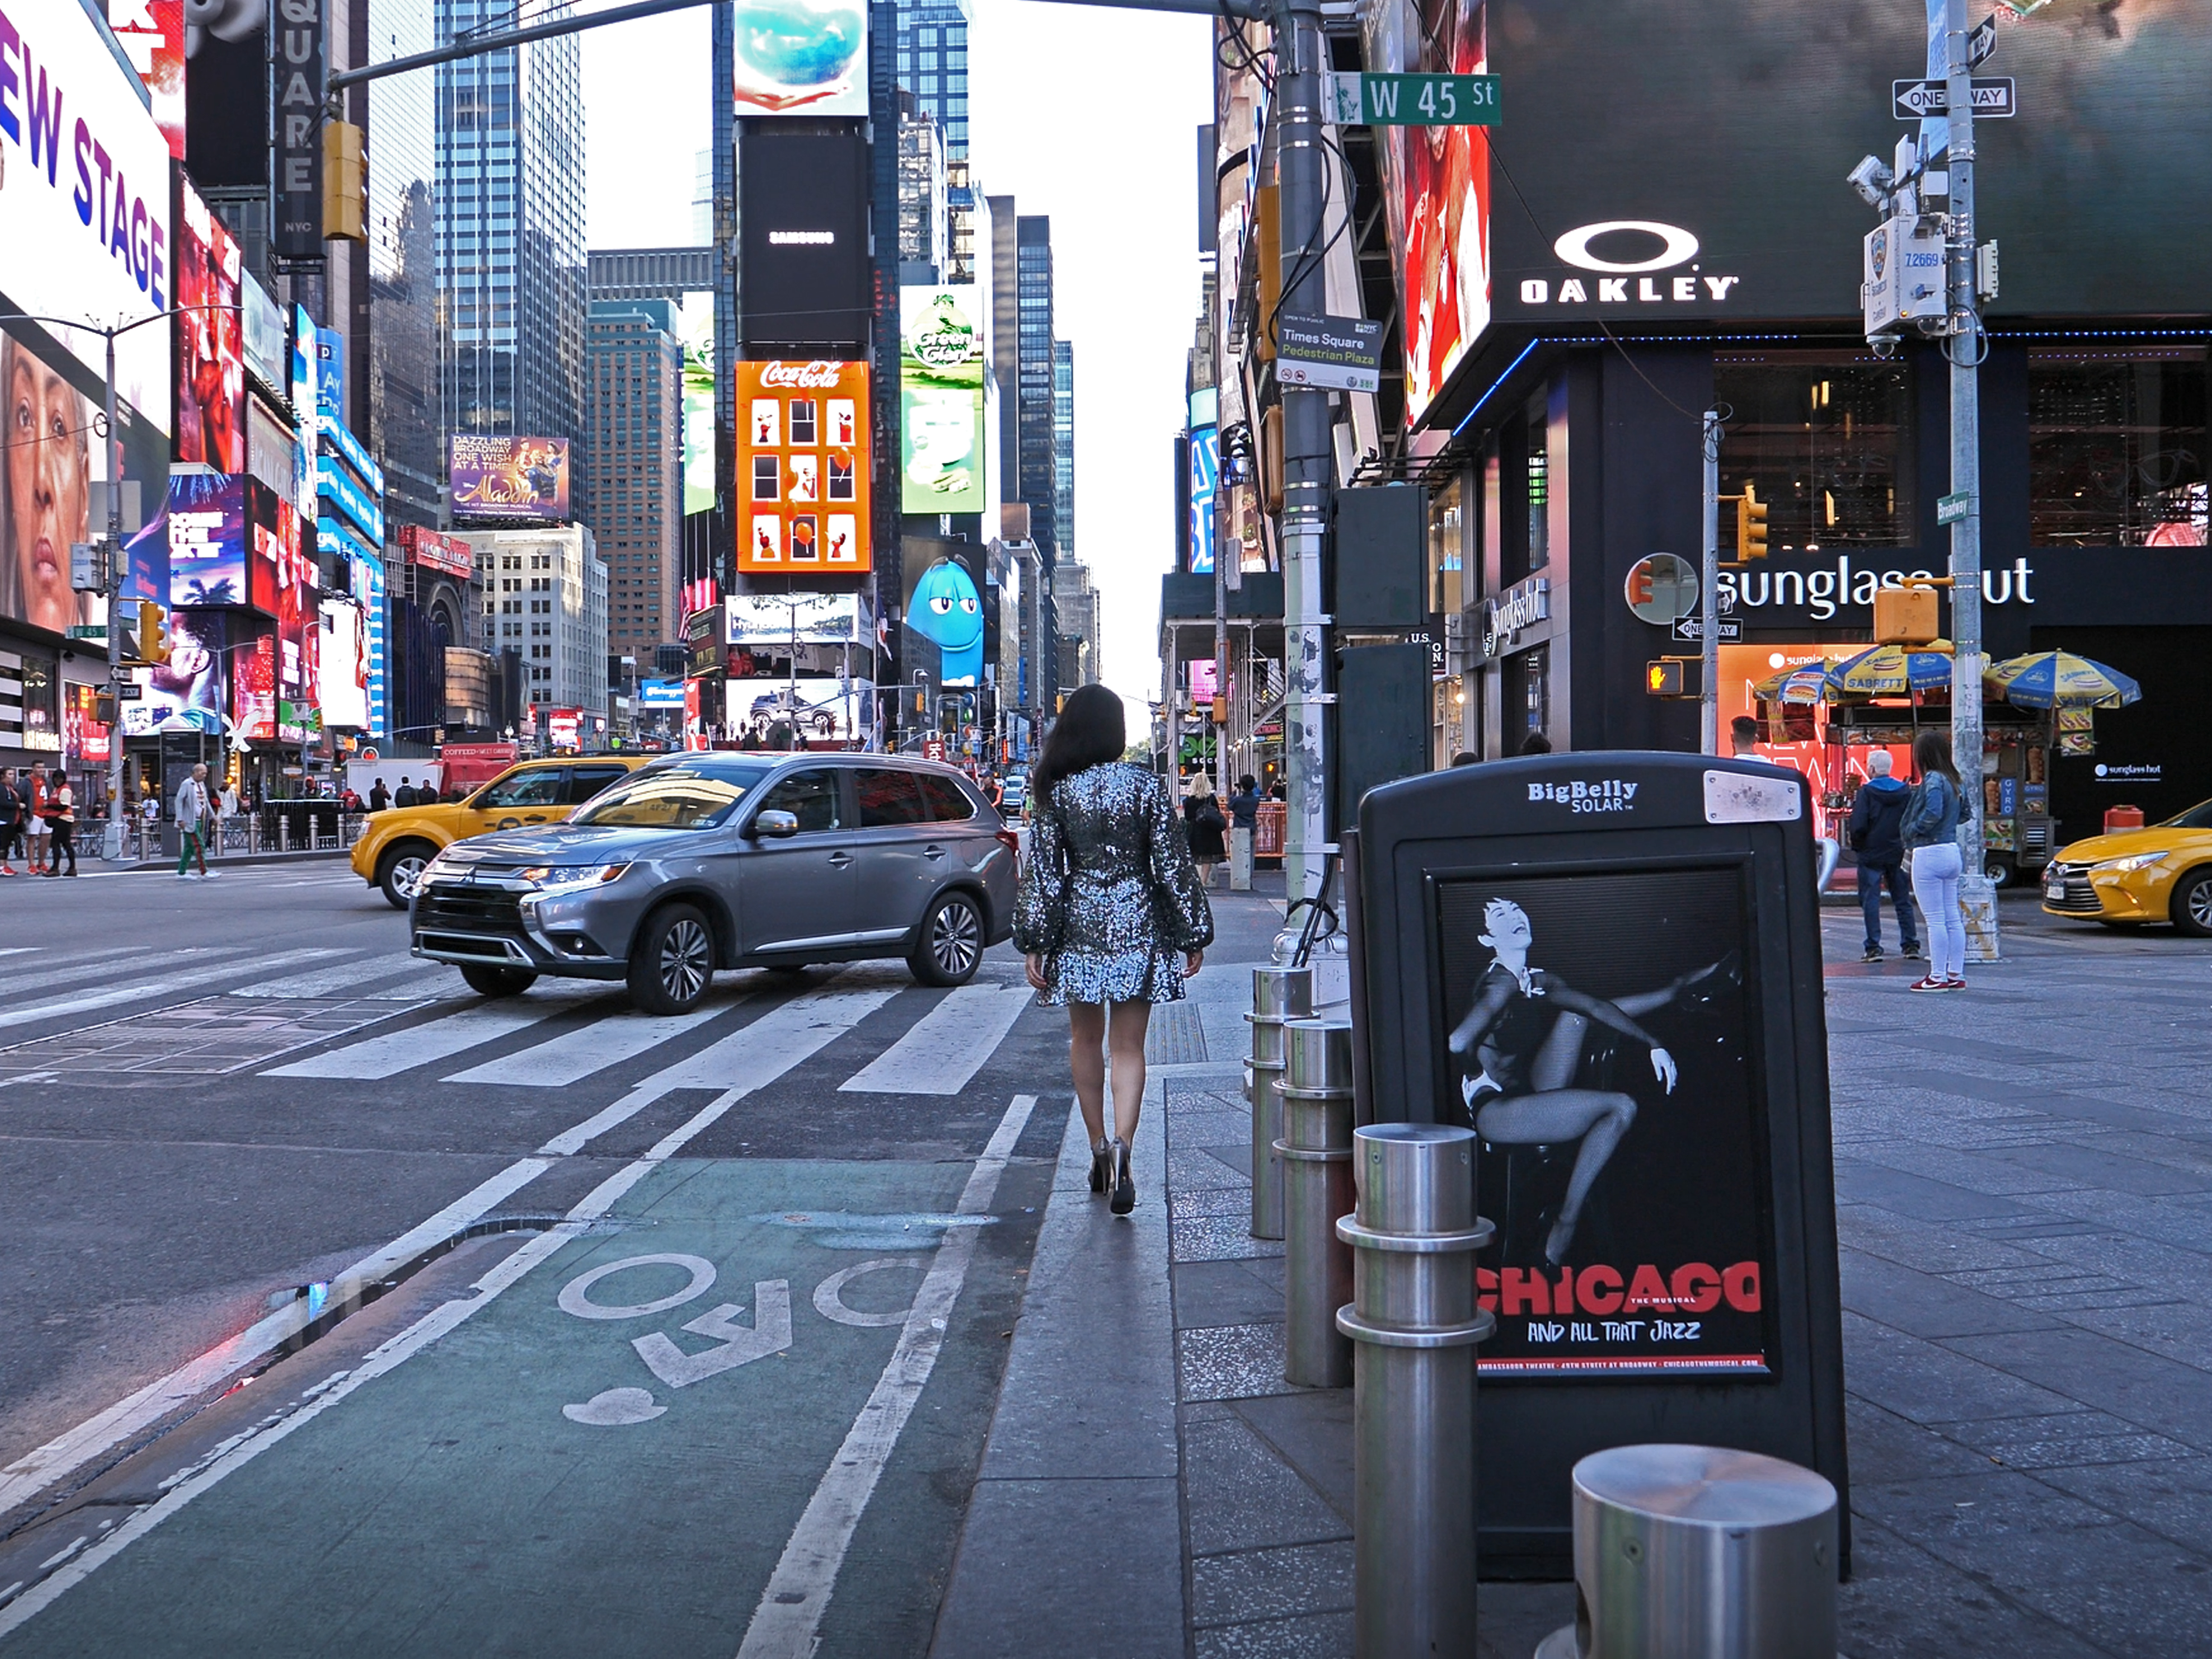 NYC Travel Guide: Budget Broadway Tickets TodayTix Chicago poster in Times Square